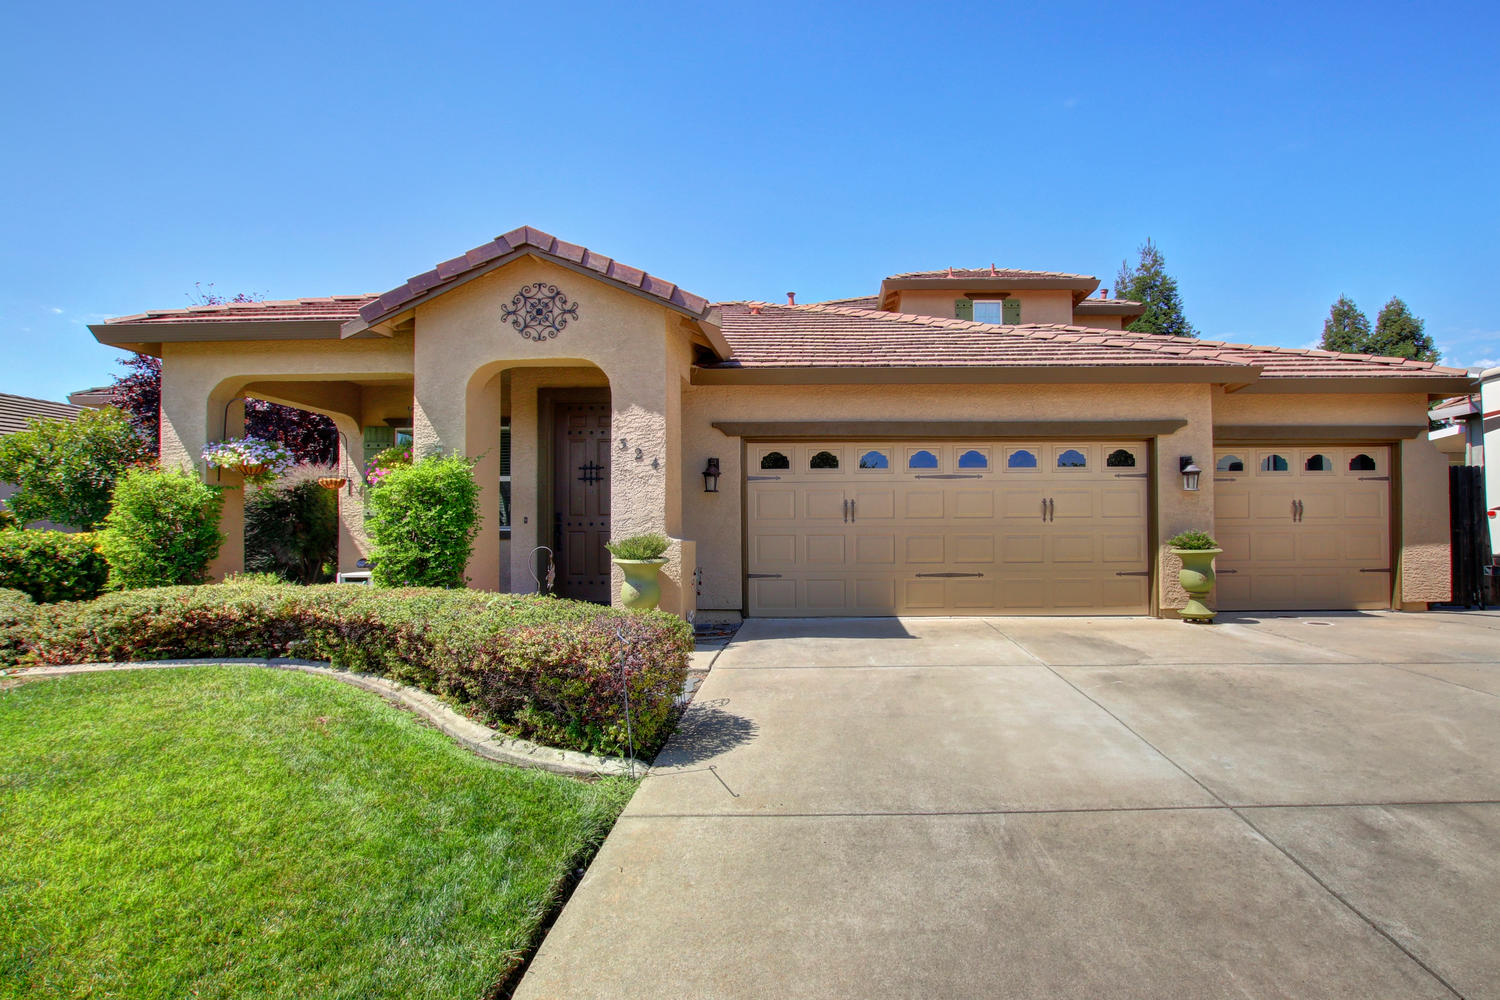 Single Family Homes for Active at Gorgeous Home with SOLAR in Lincoln 324 Ashwood Way Lincoln, California 95648 United States